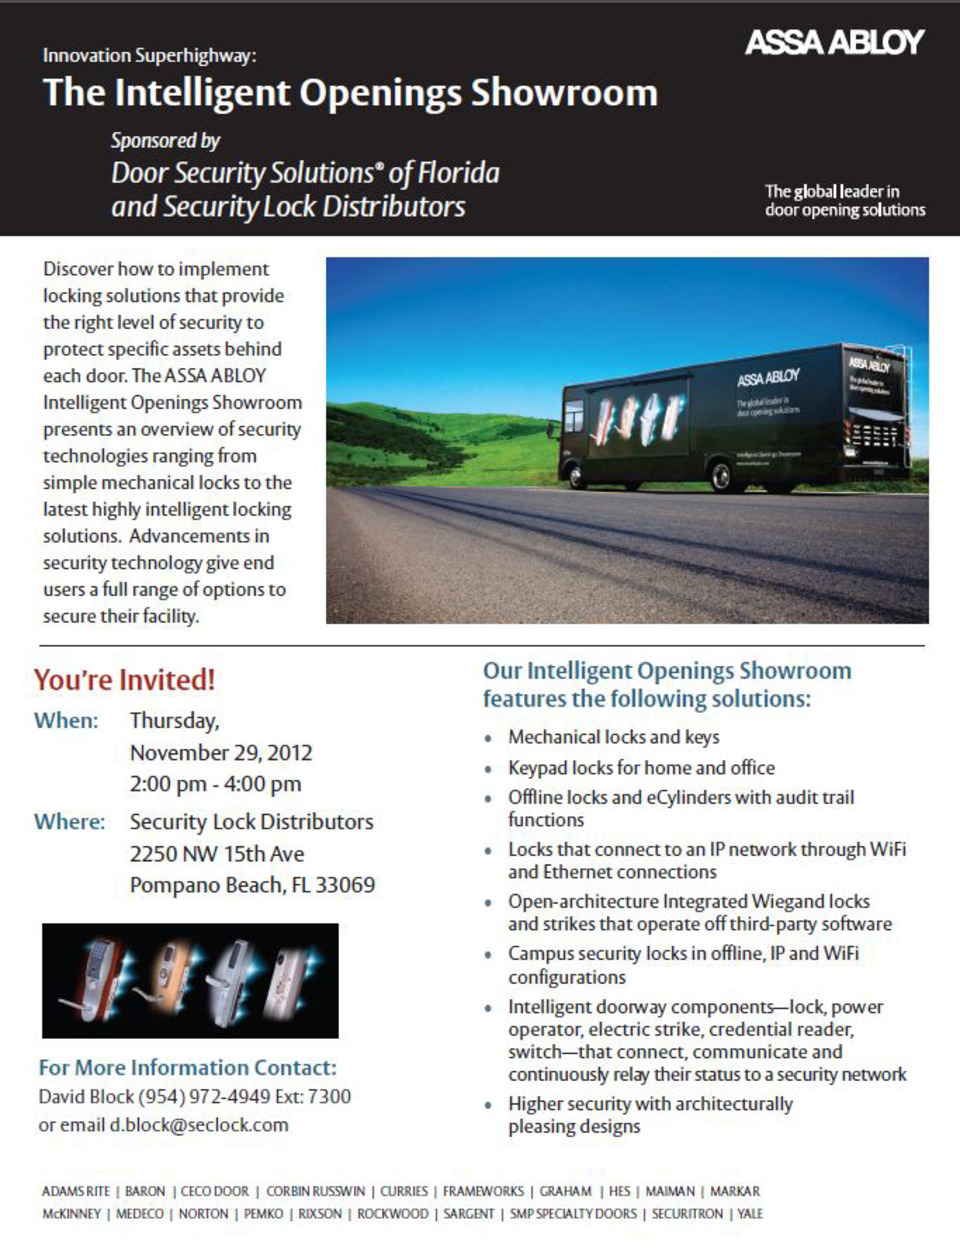 Tour the ASSA ABLOY Intelligent Openings Showroom for an